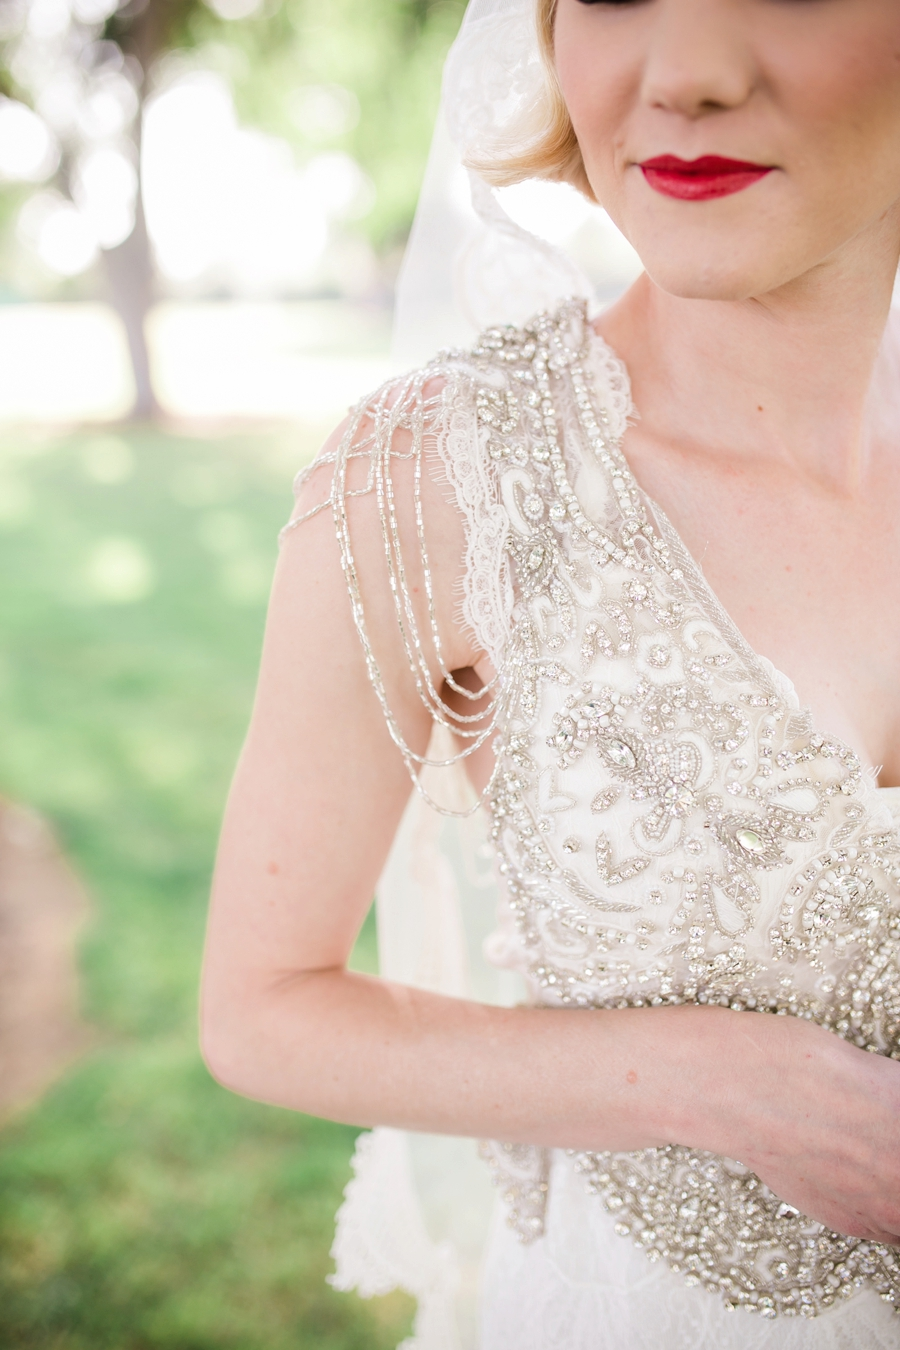 Elegant 1920s Inspired Wedding Ideas via TheELD.com